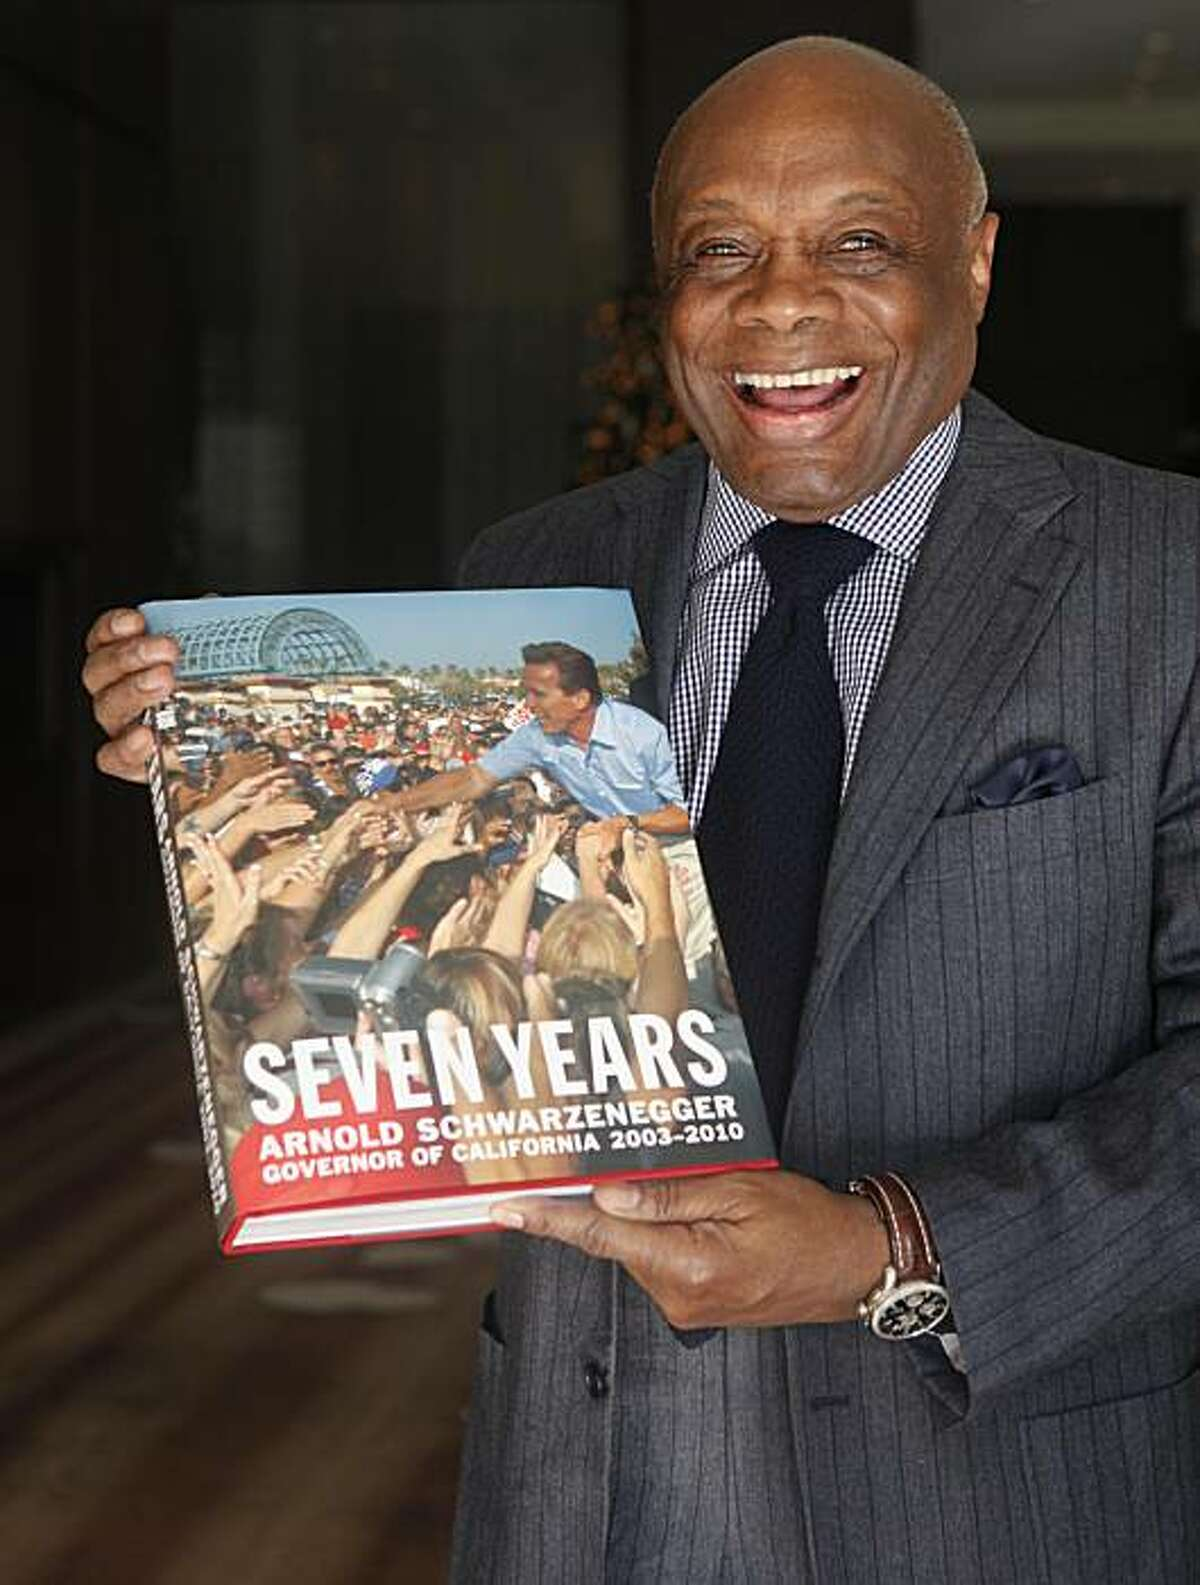 Standing in the lobby of the St. Regis Hotel, Former San Francisco Mayor Willie Brown holds a copy of a limited run picture book that makes light of Governor Arnold Schwerzenegger's 7 year term on Wednesday Dec. 8, 2010 in San Francisco, Calif.